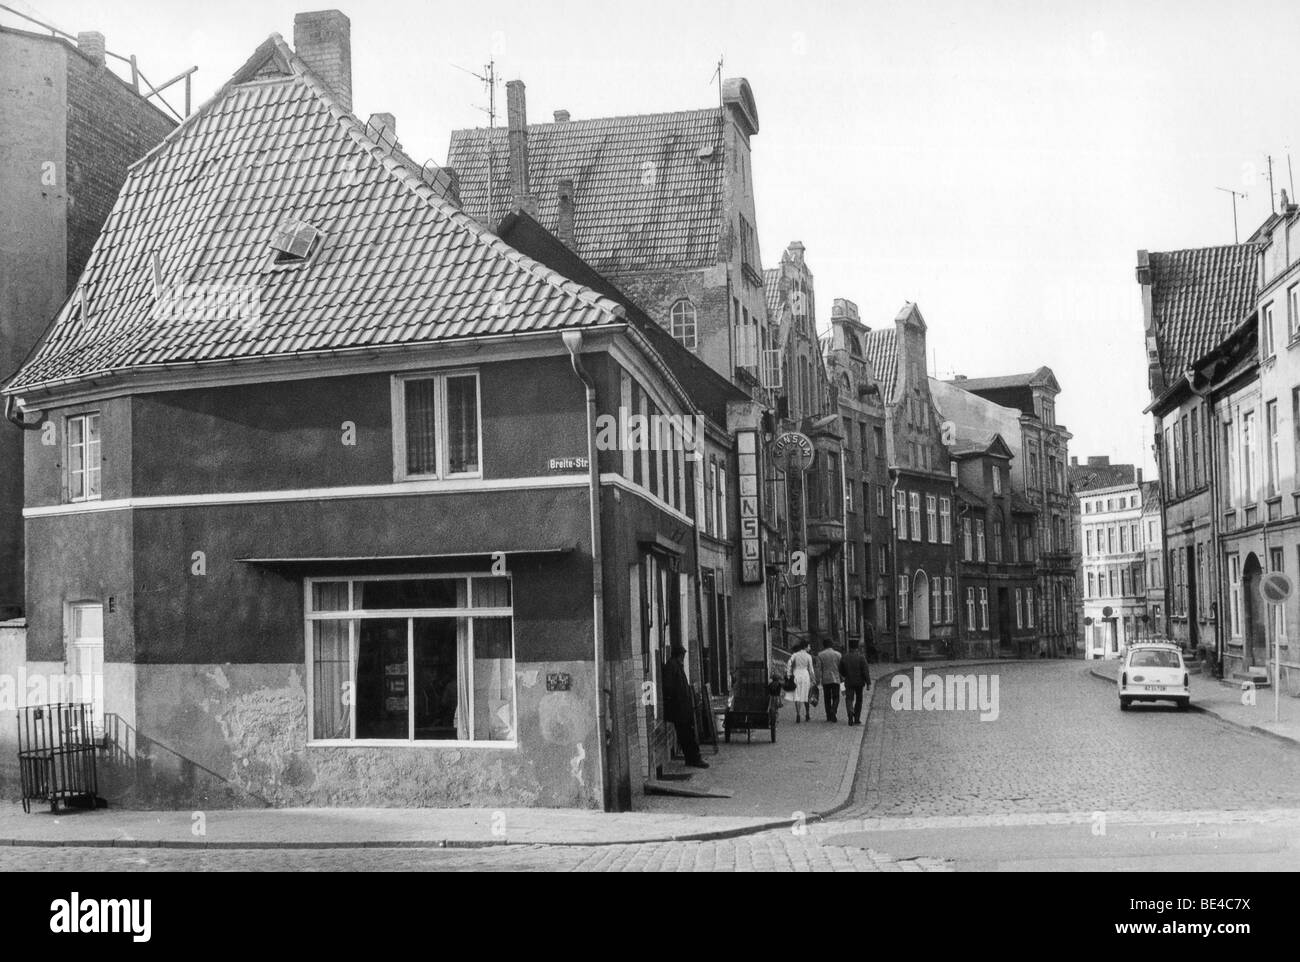 Wismar, GDR, East Germany, historical photo, about 1982 - Stock Image